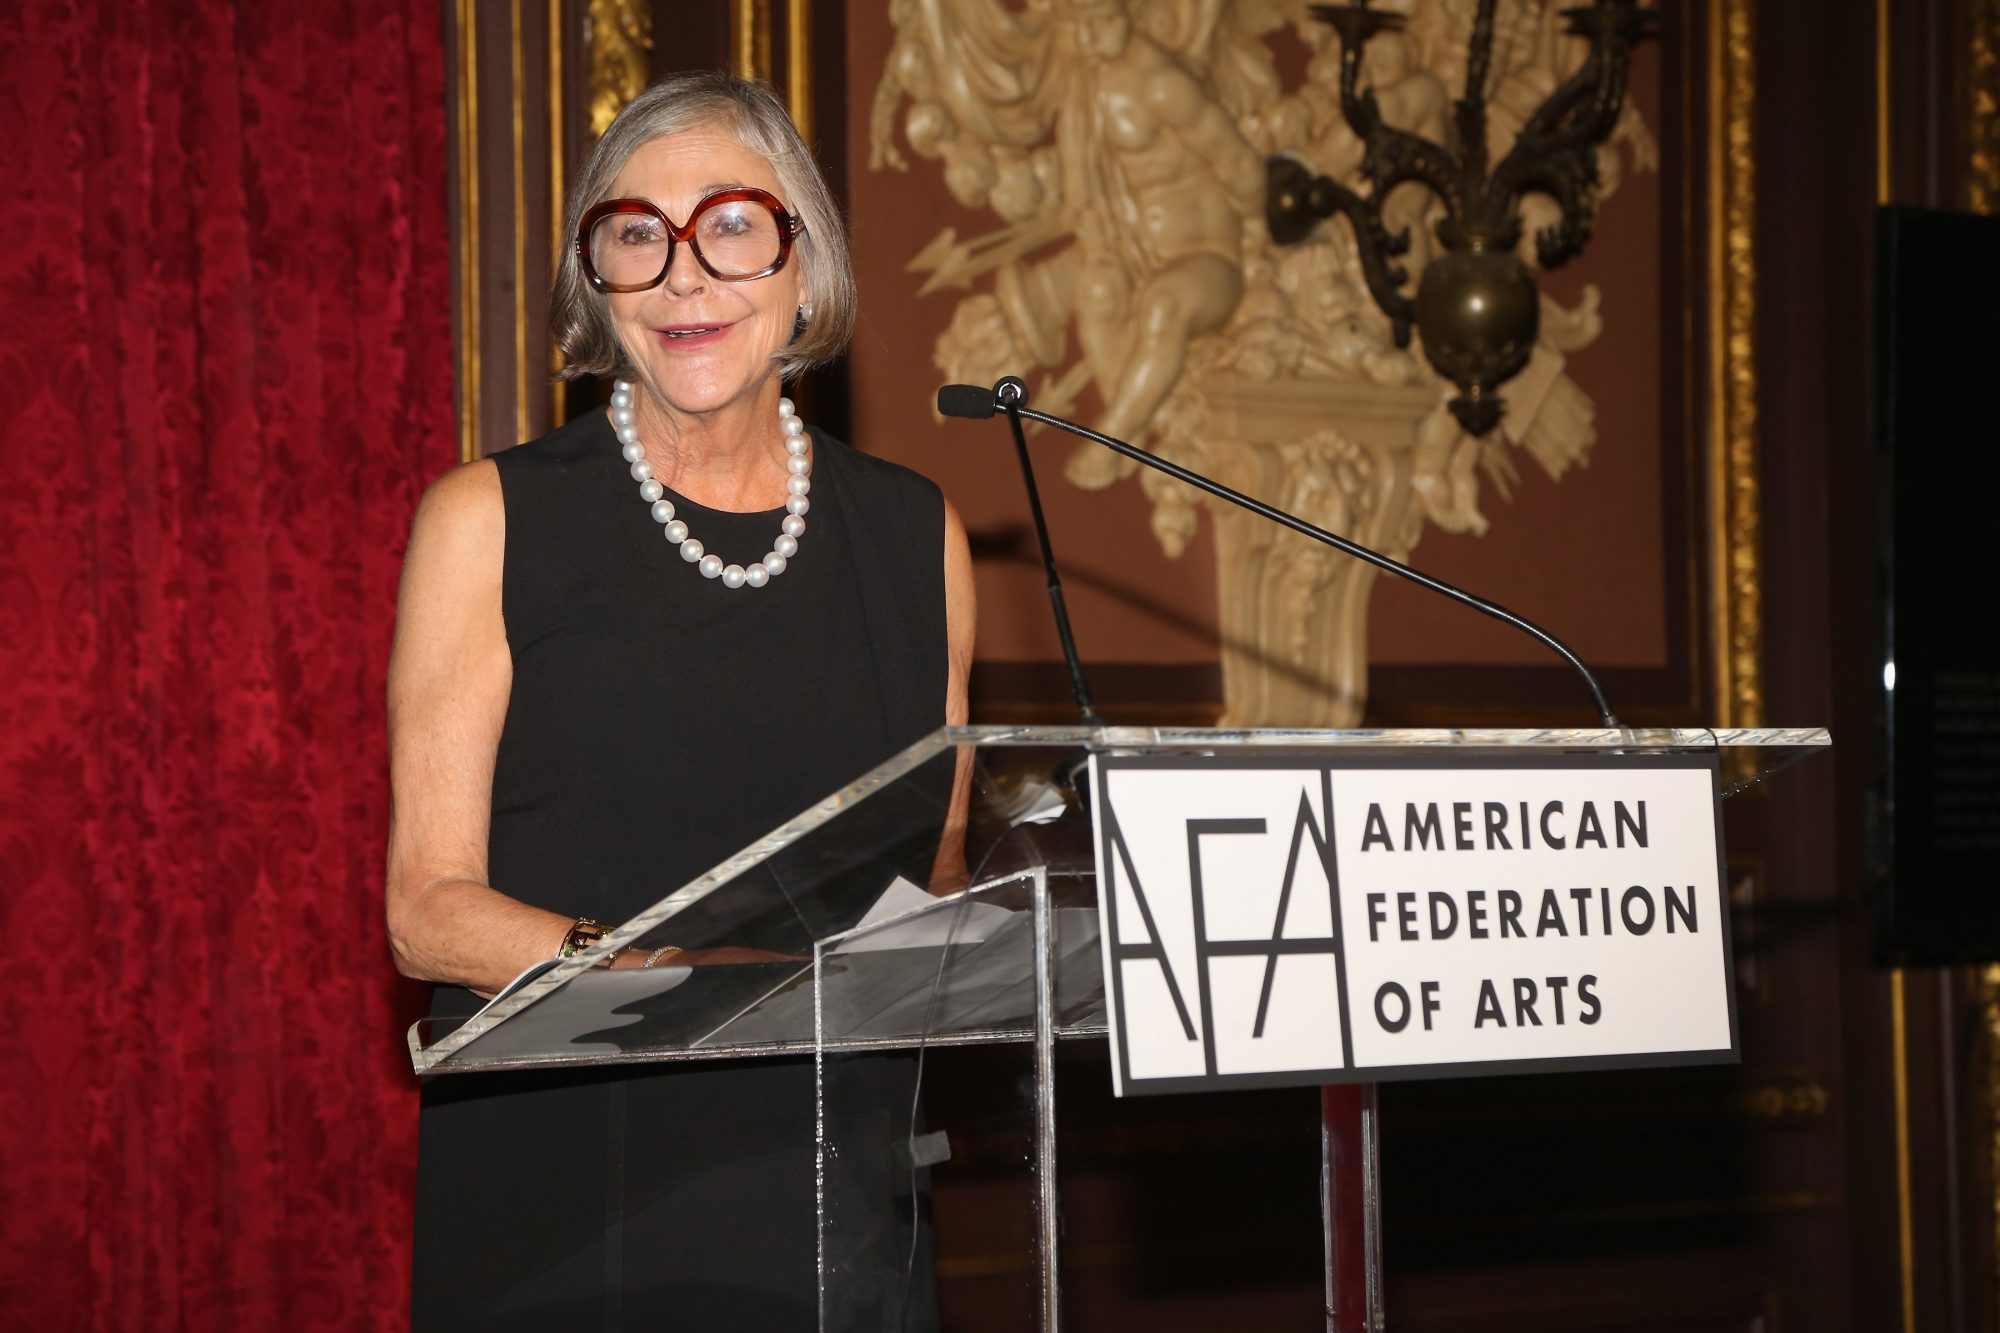 American Federation of Arts Gala & Cultural Leadership Awards 2016